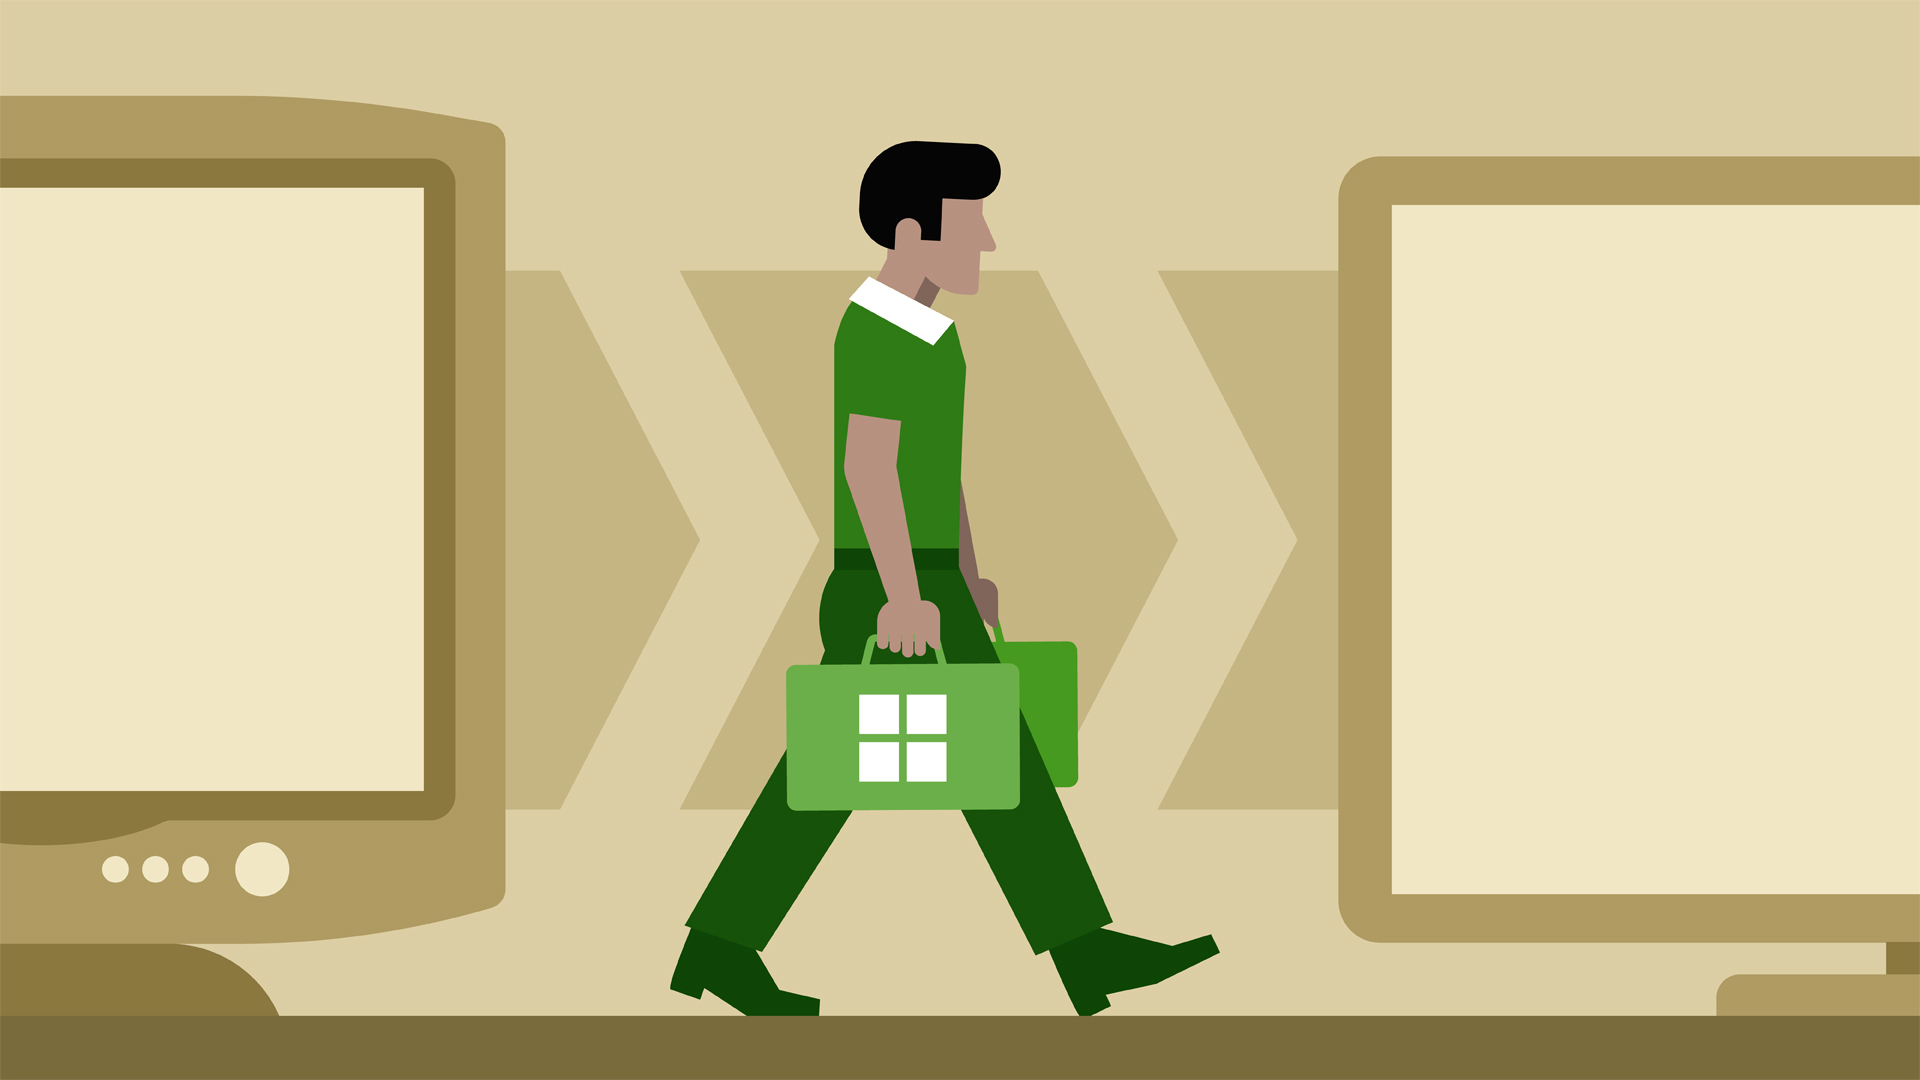 Migrating from Office 2007 to Office 2016